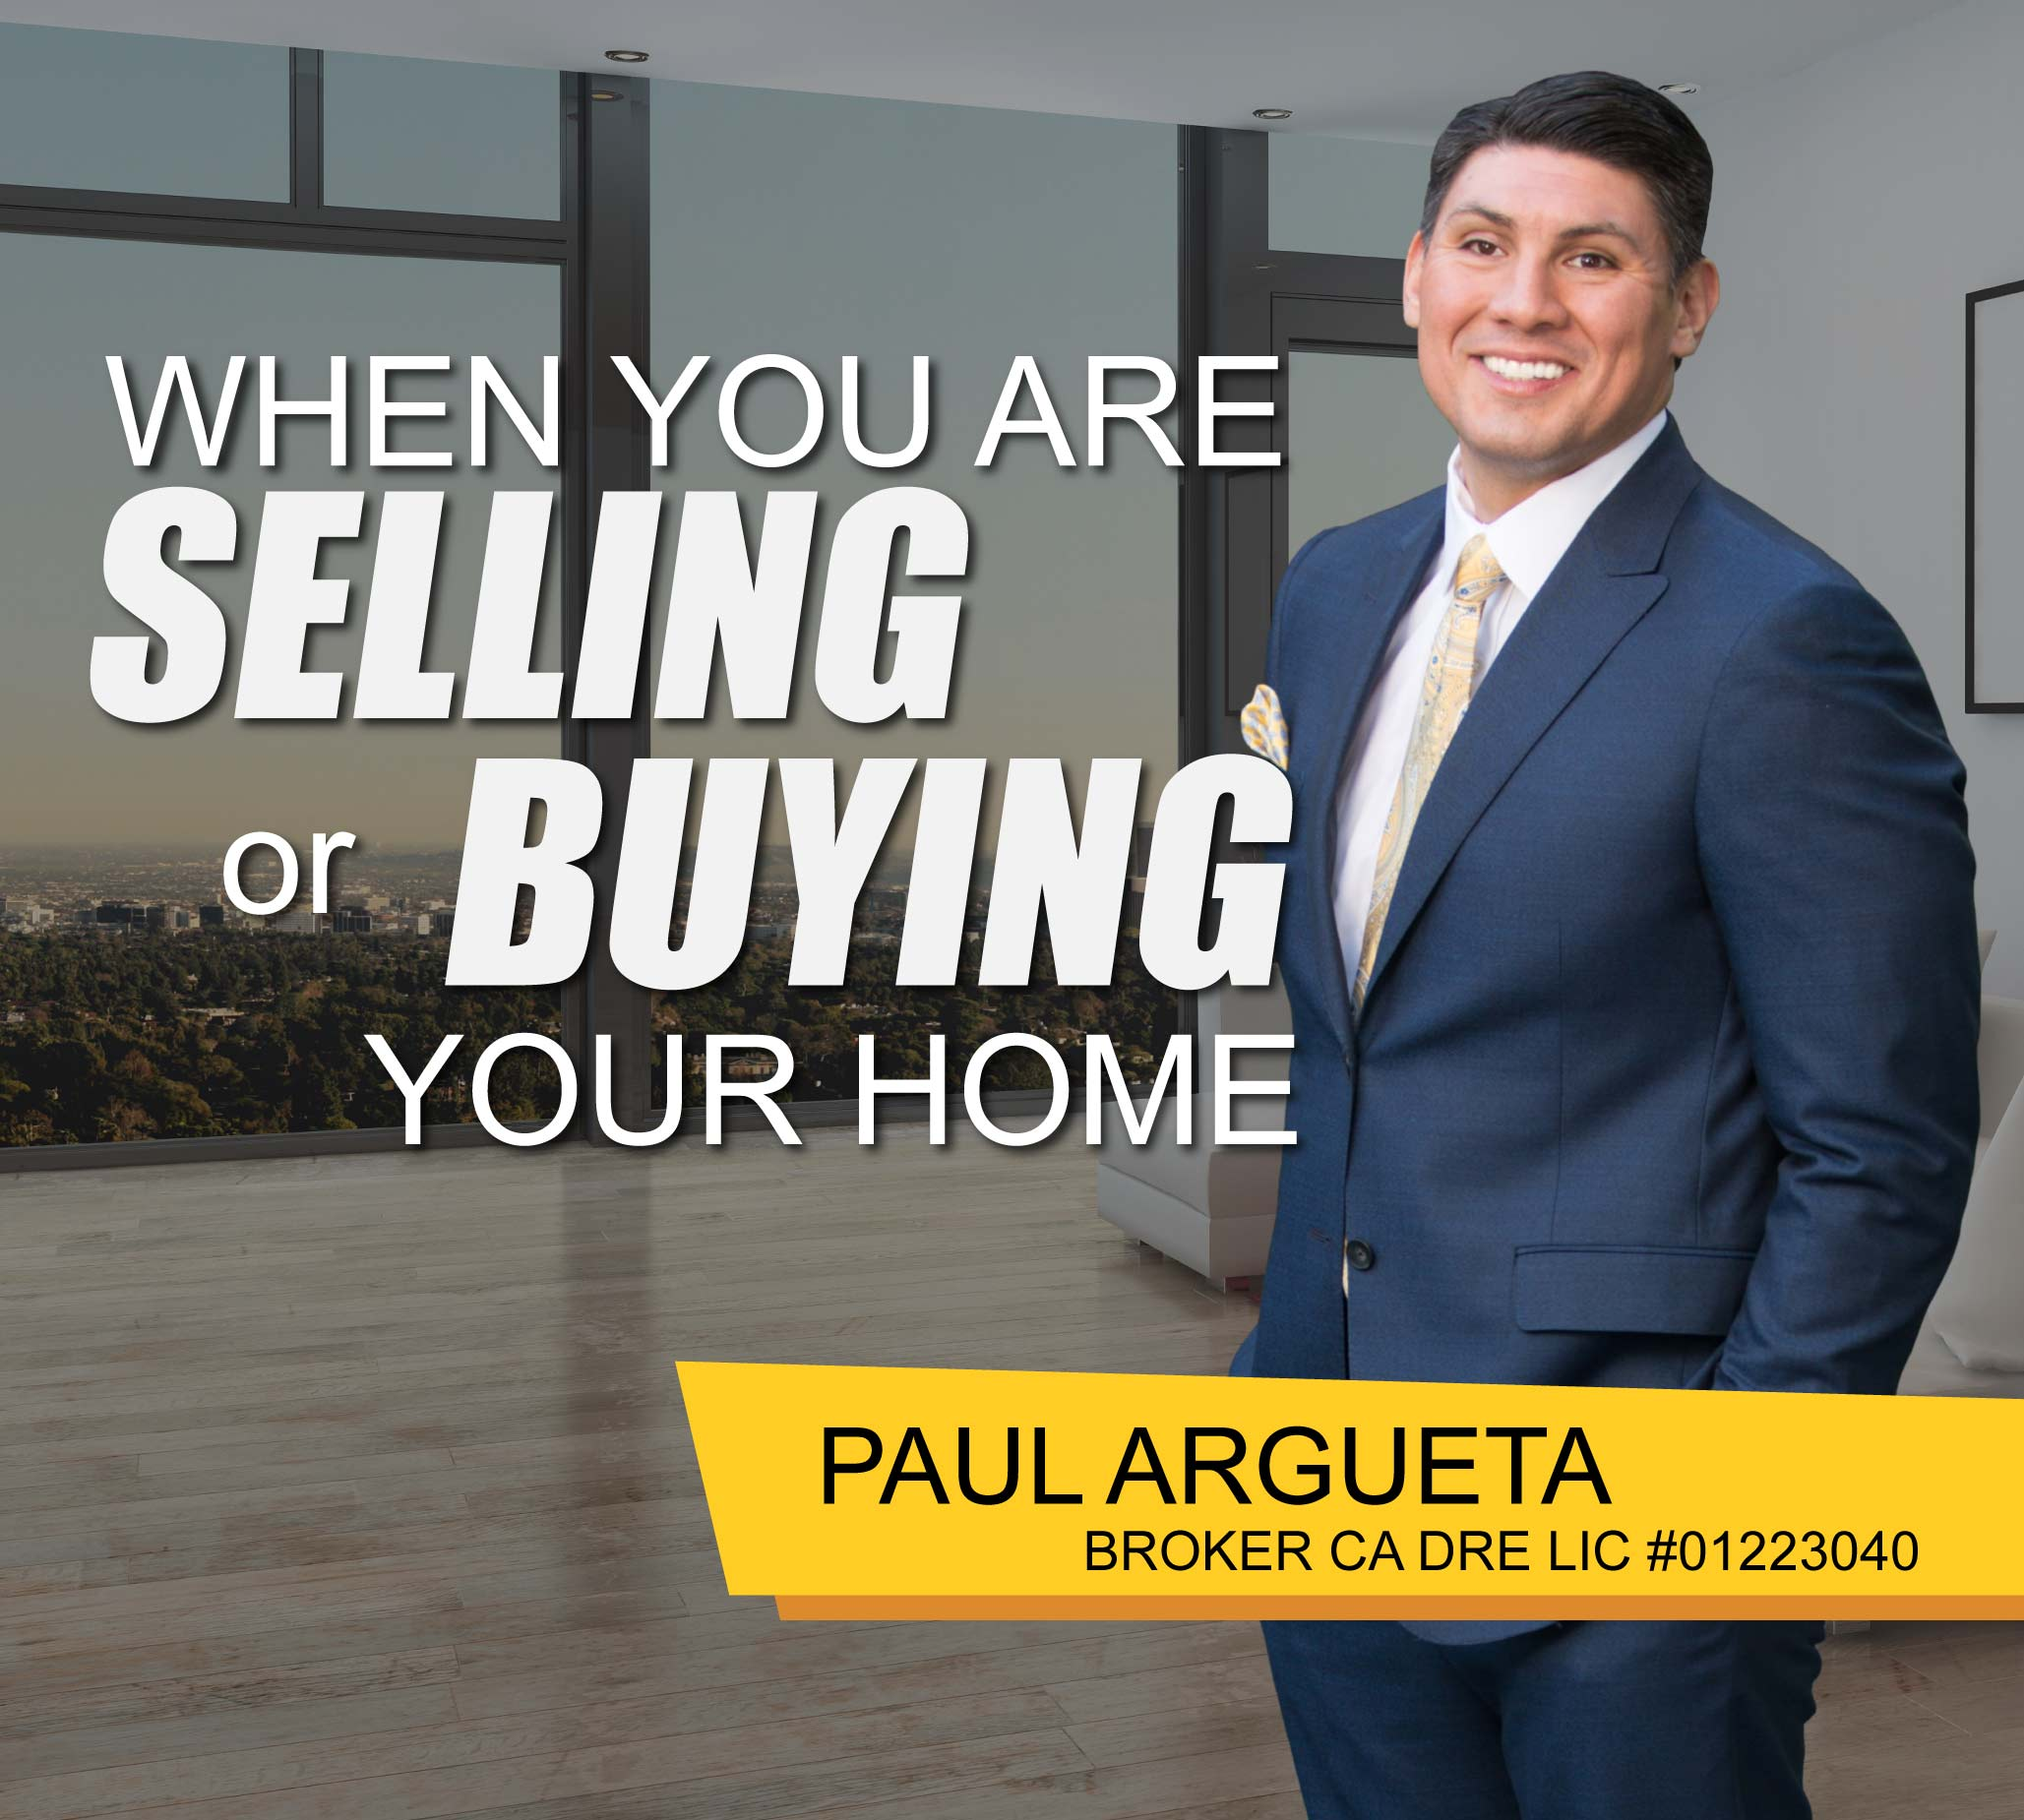 talktopaul-paul-argueta-best-real-estate-agent-in-los-angeles-best-realtor-in-los-angeles-luxury-real-estate-agent-pro-athlete-relocation-celebrity-real-estate-agent-4